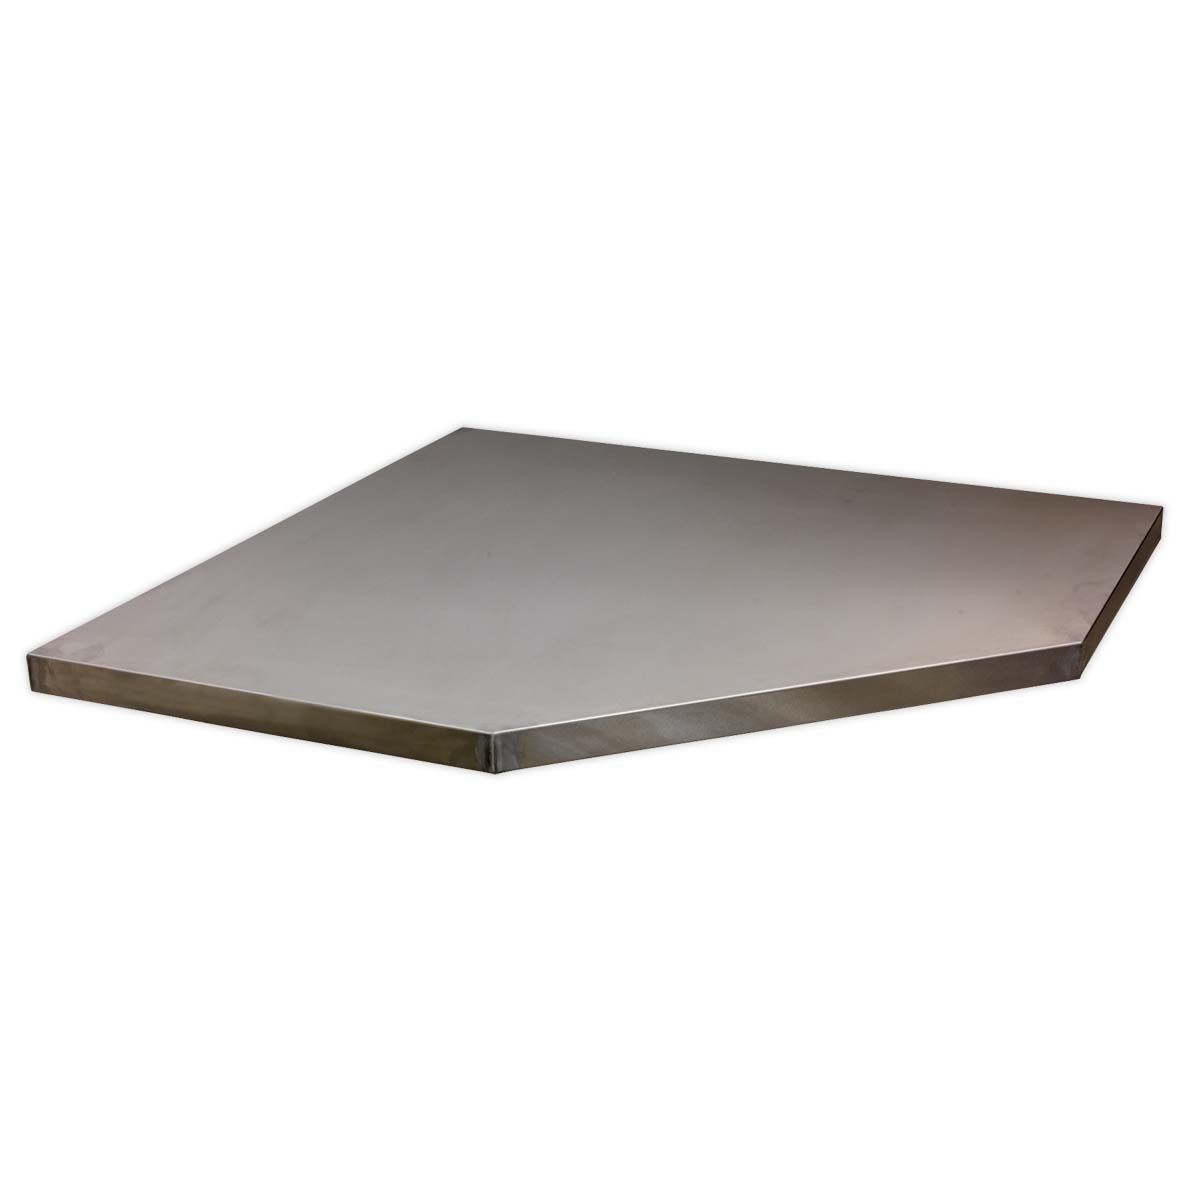 Sealey Superline Pro Stainless Steel Worktop for Modular Corner Cabinet 865mm